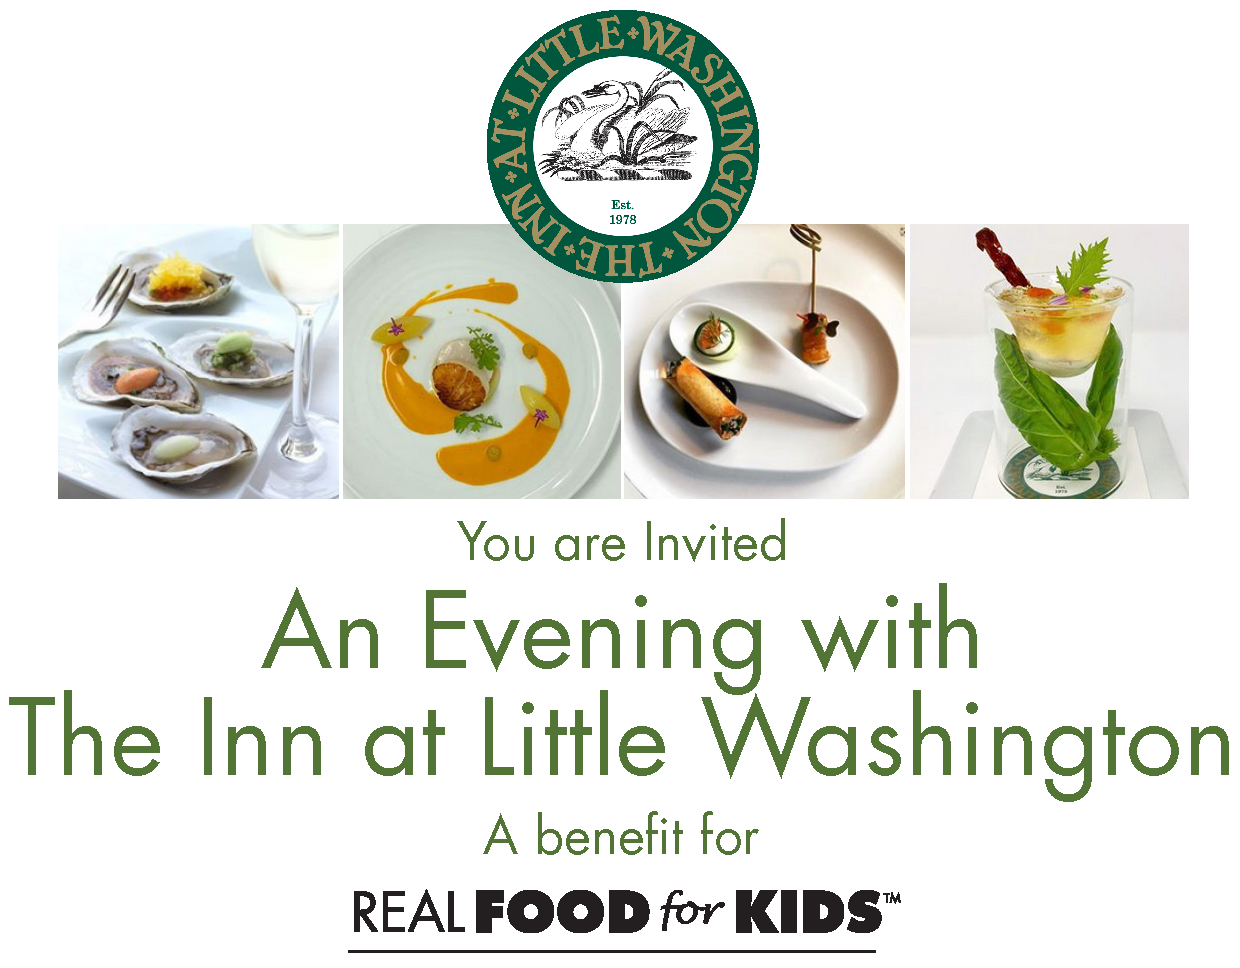 You are Invited to An Evening with The Inn at Little Washington, A benefit for Real Food for Kids